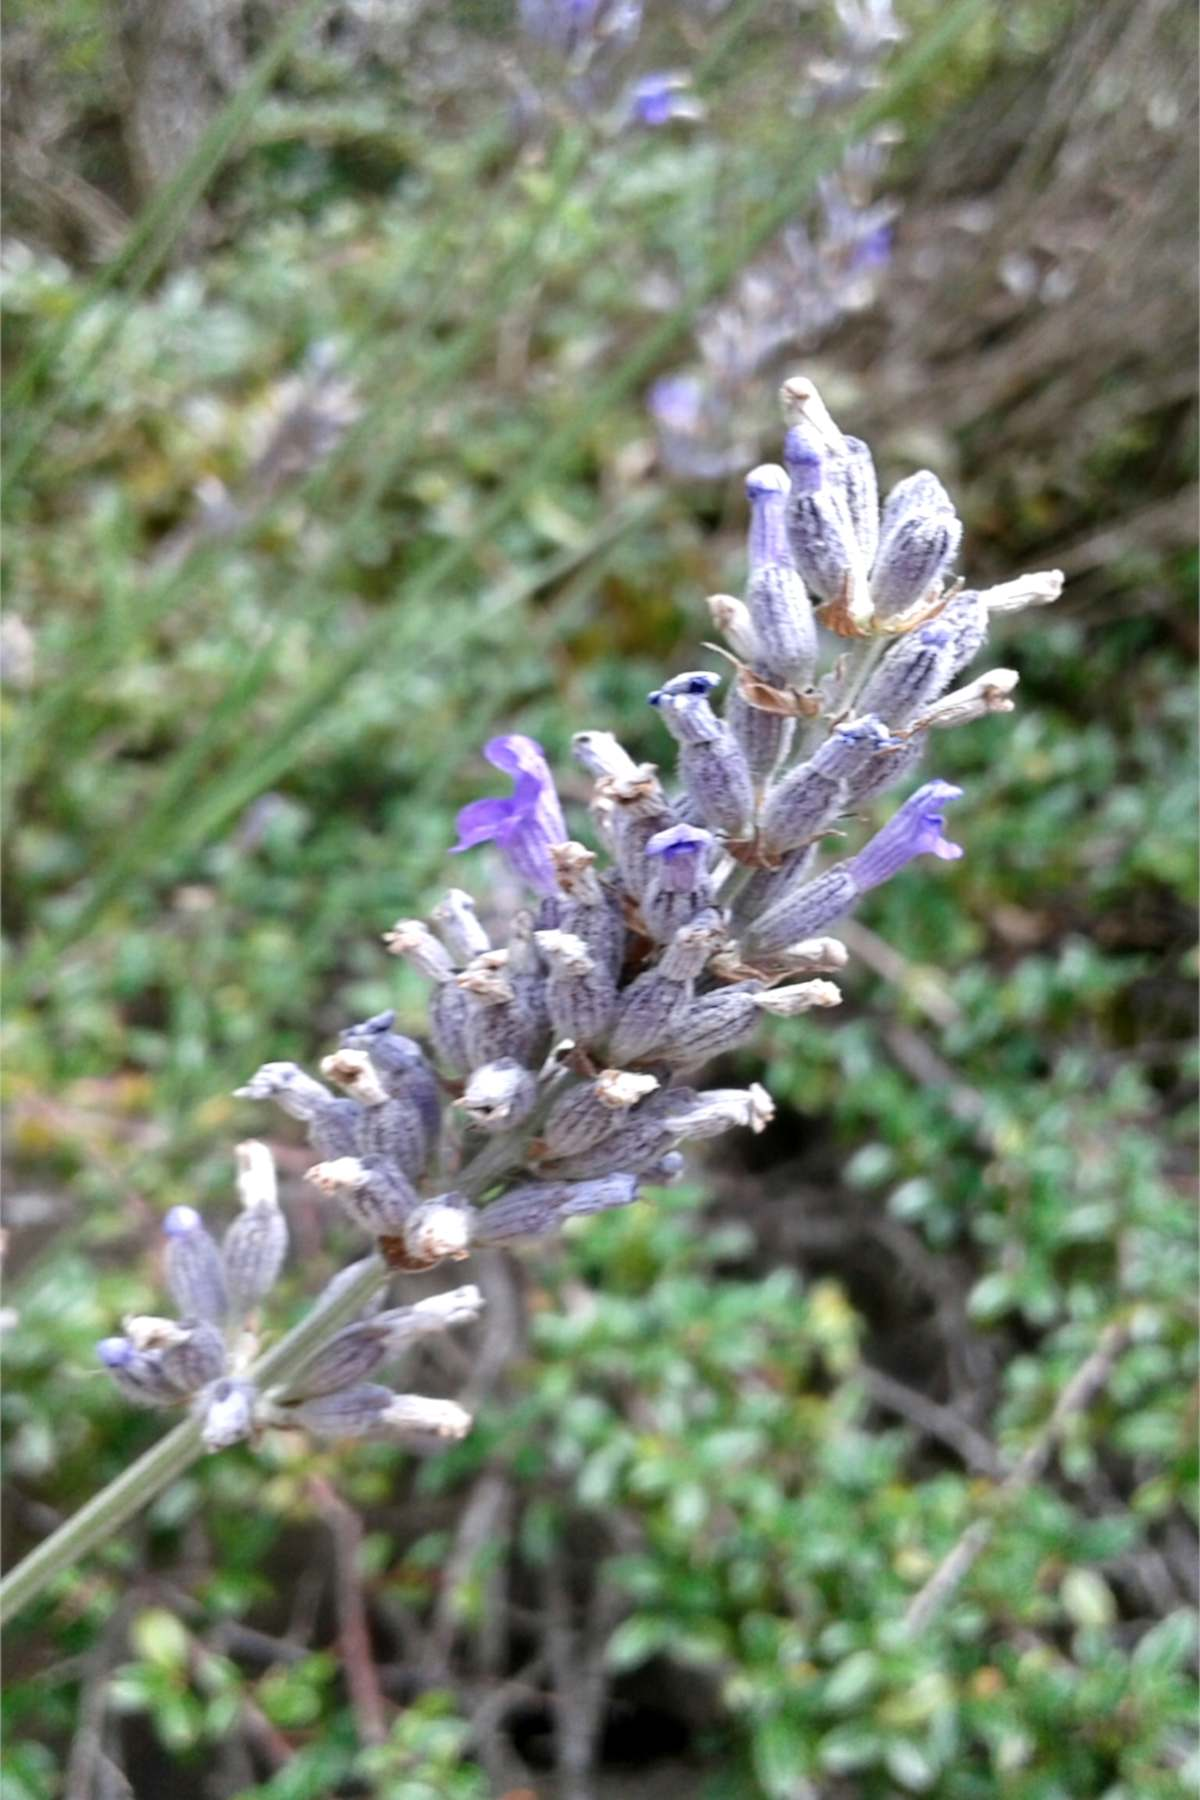 A full panicle of spike lavender flowers close-up, slightly dried.